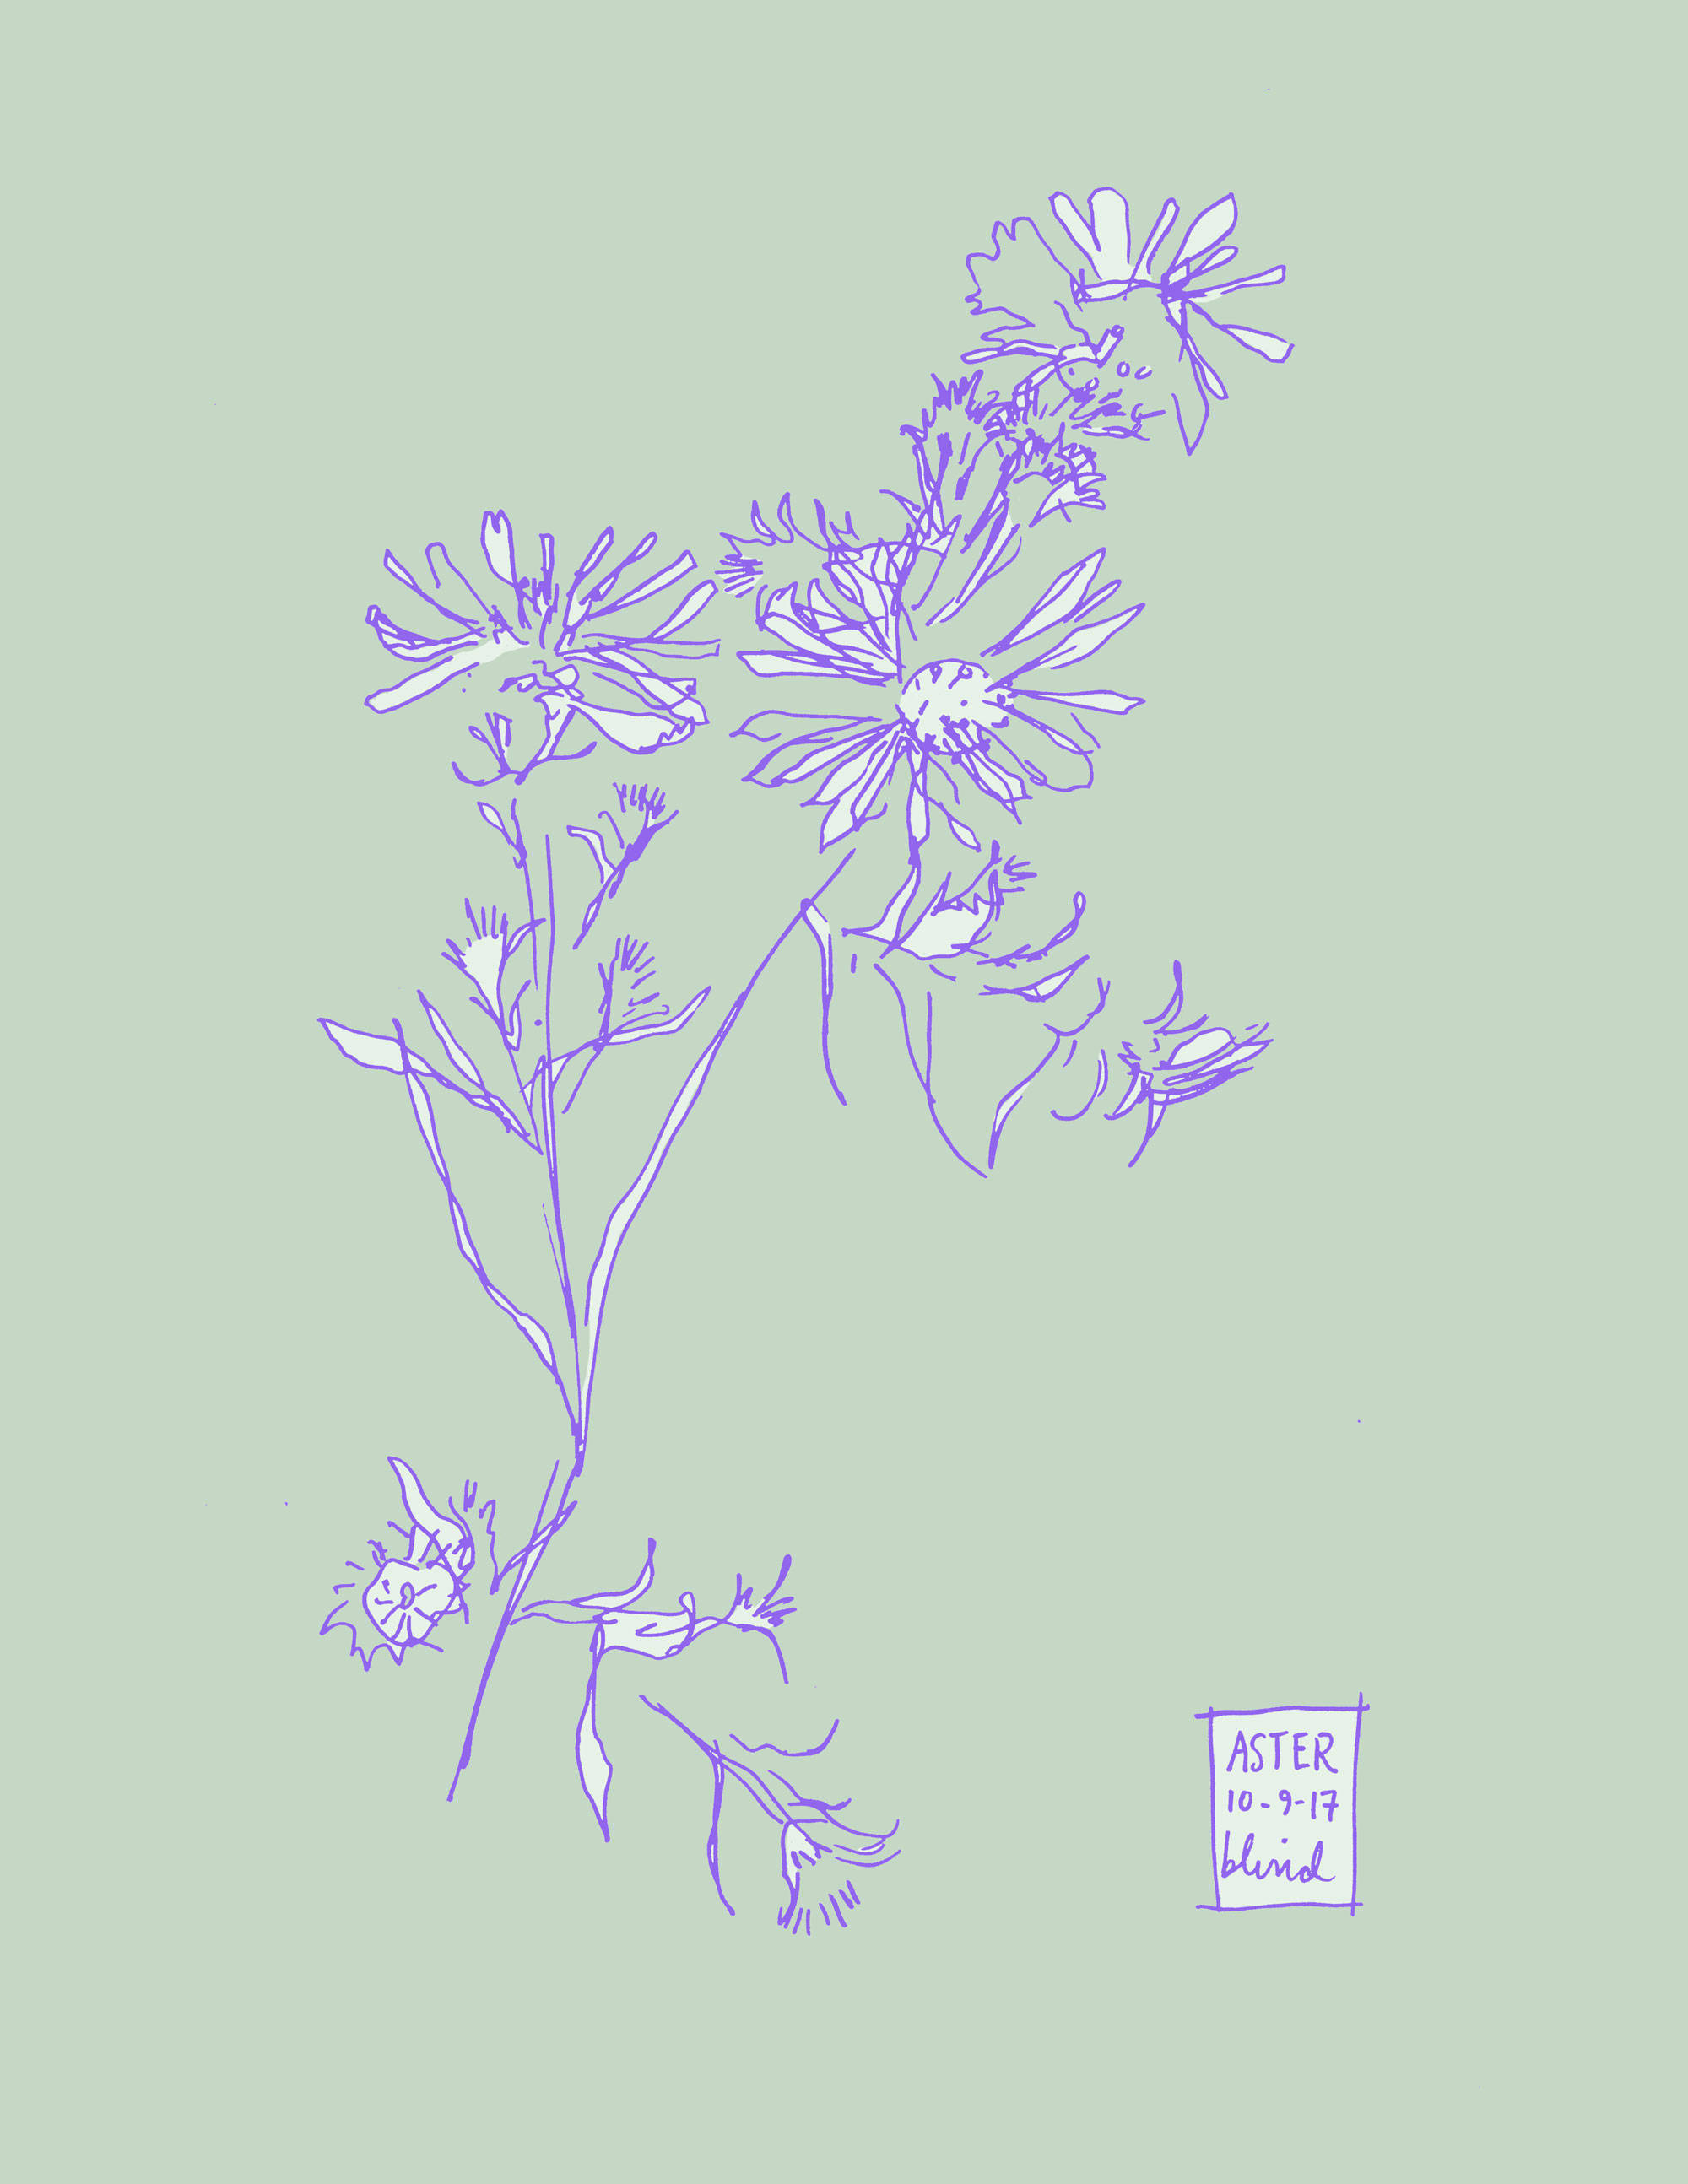 Aster botanical line illustration in color